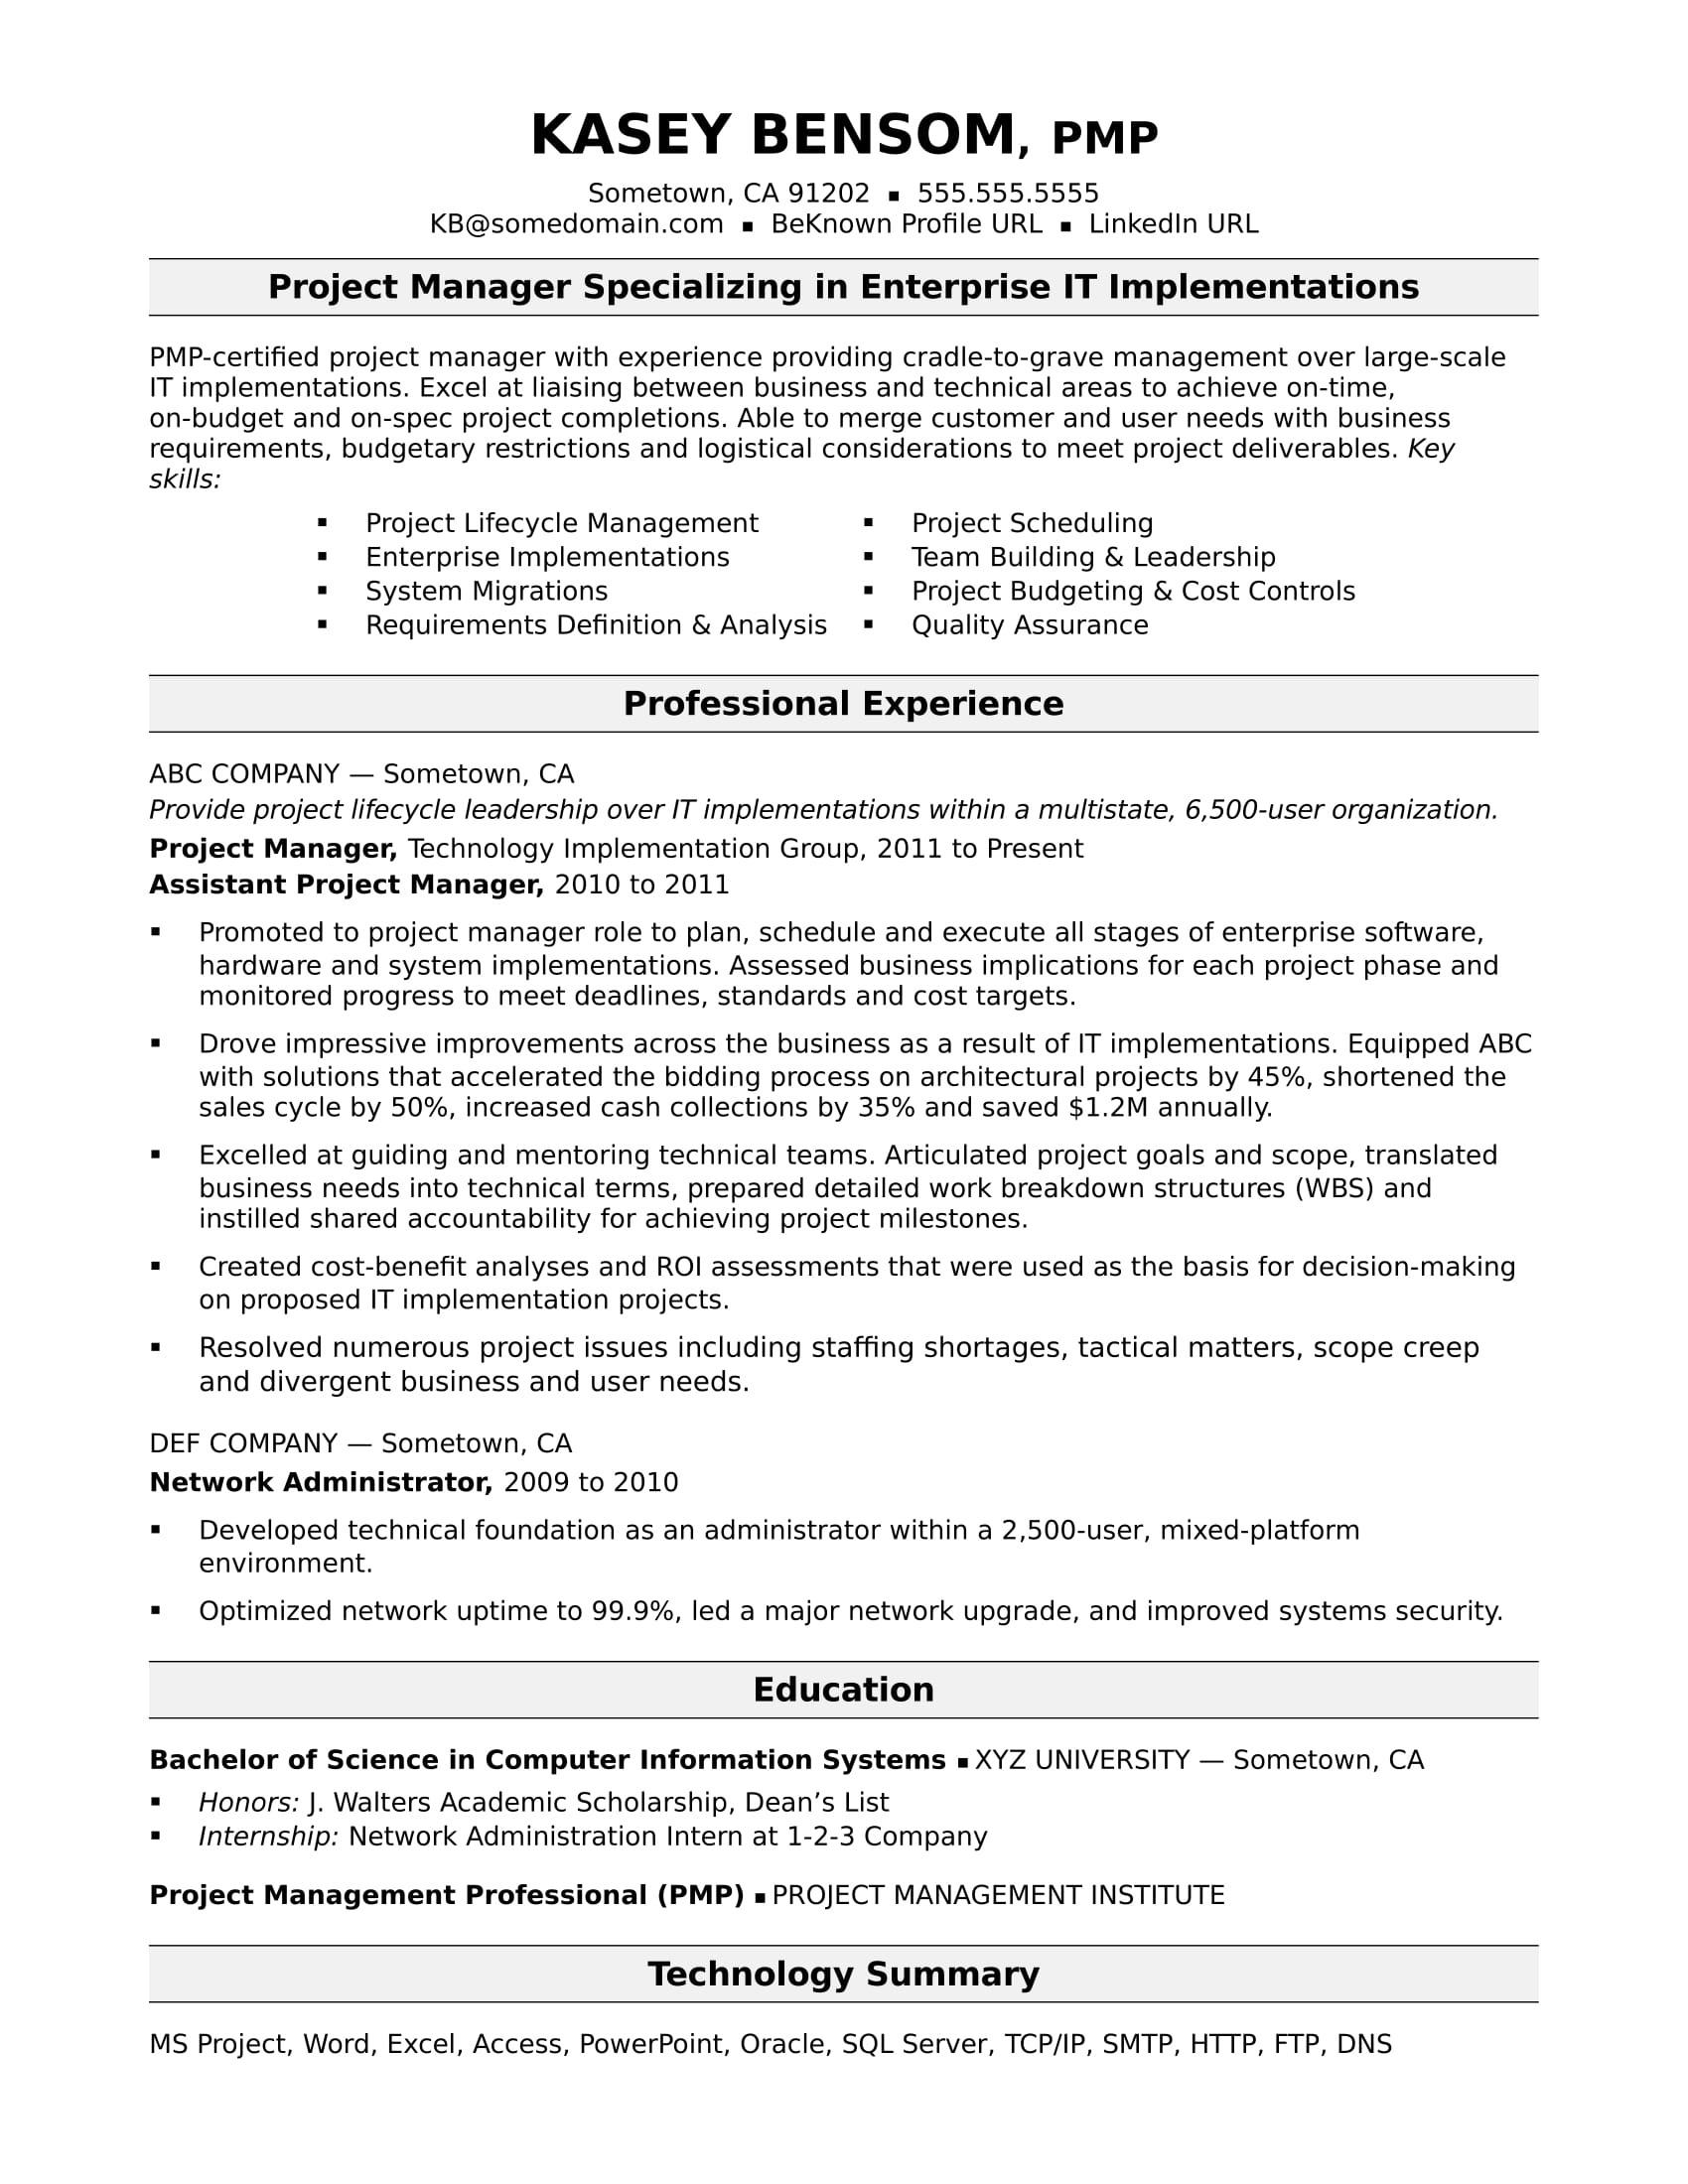 sample resume for midlevel it project manager monster engineering supervisor vet Resume It Project Manager Resume Sample